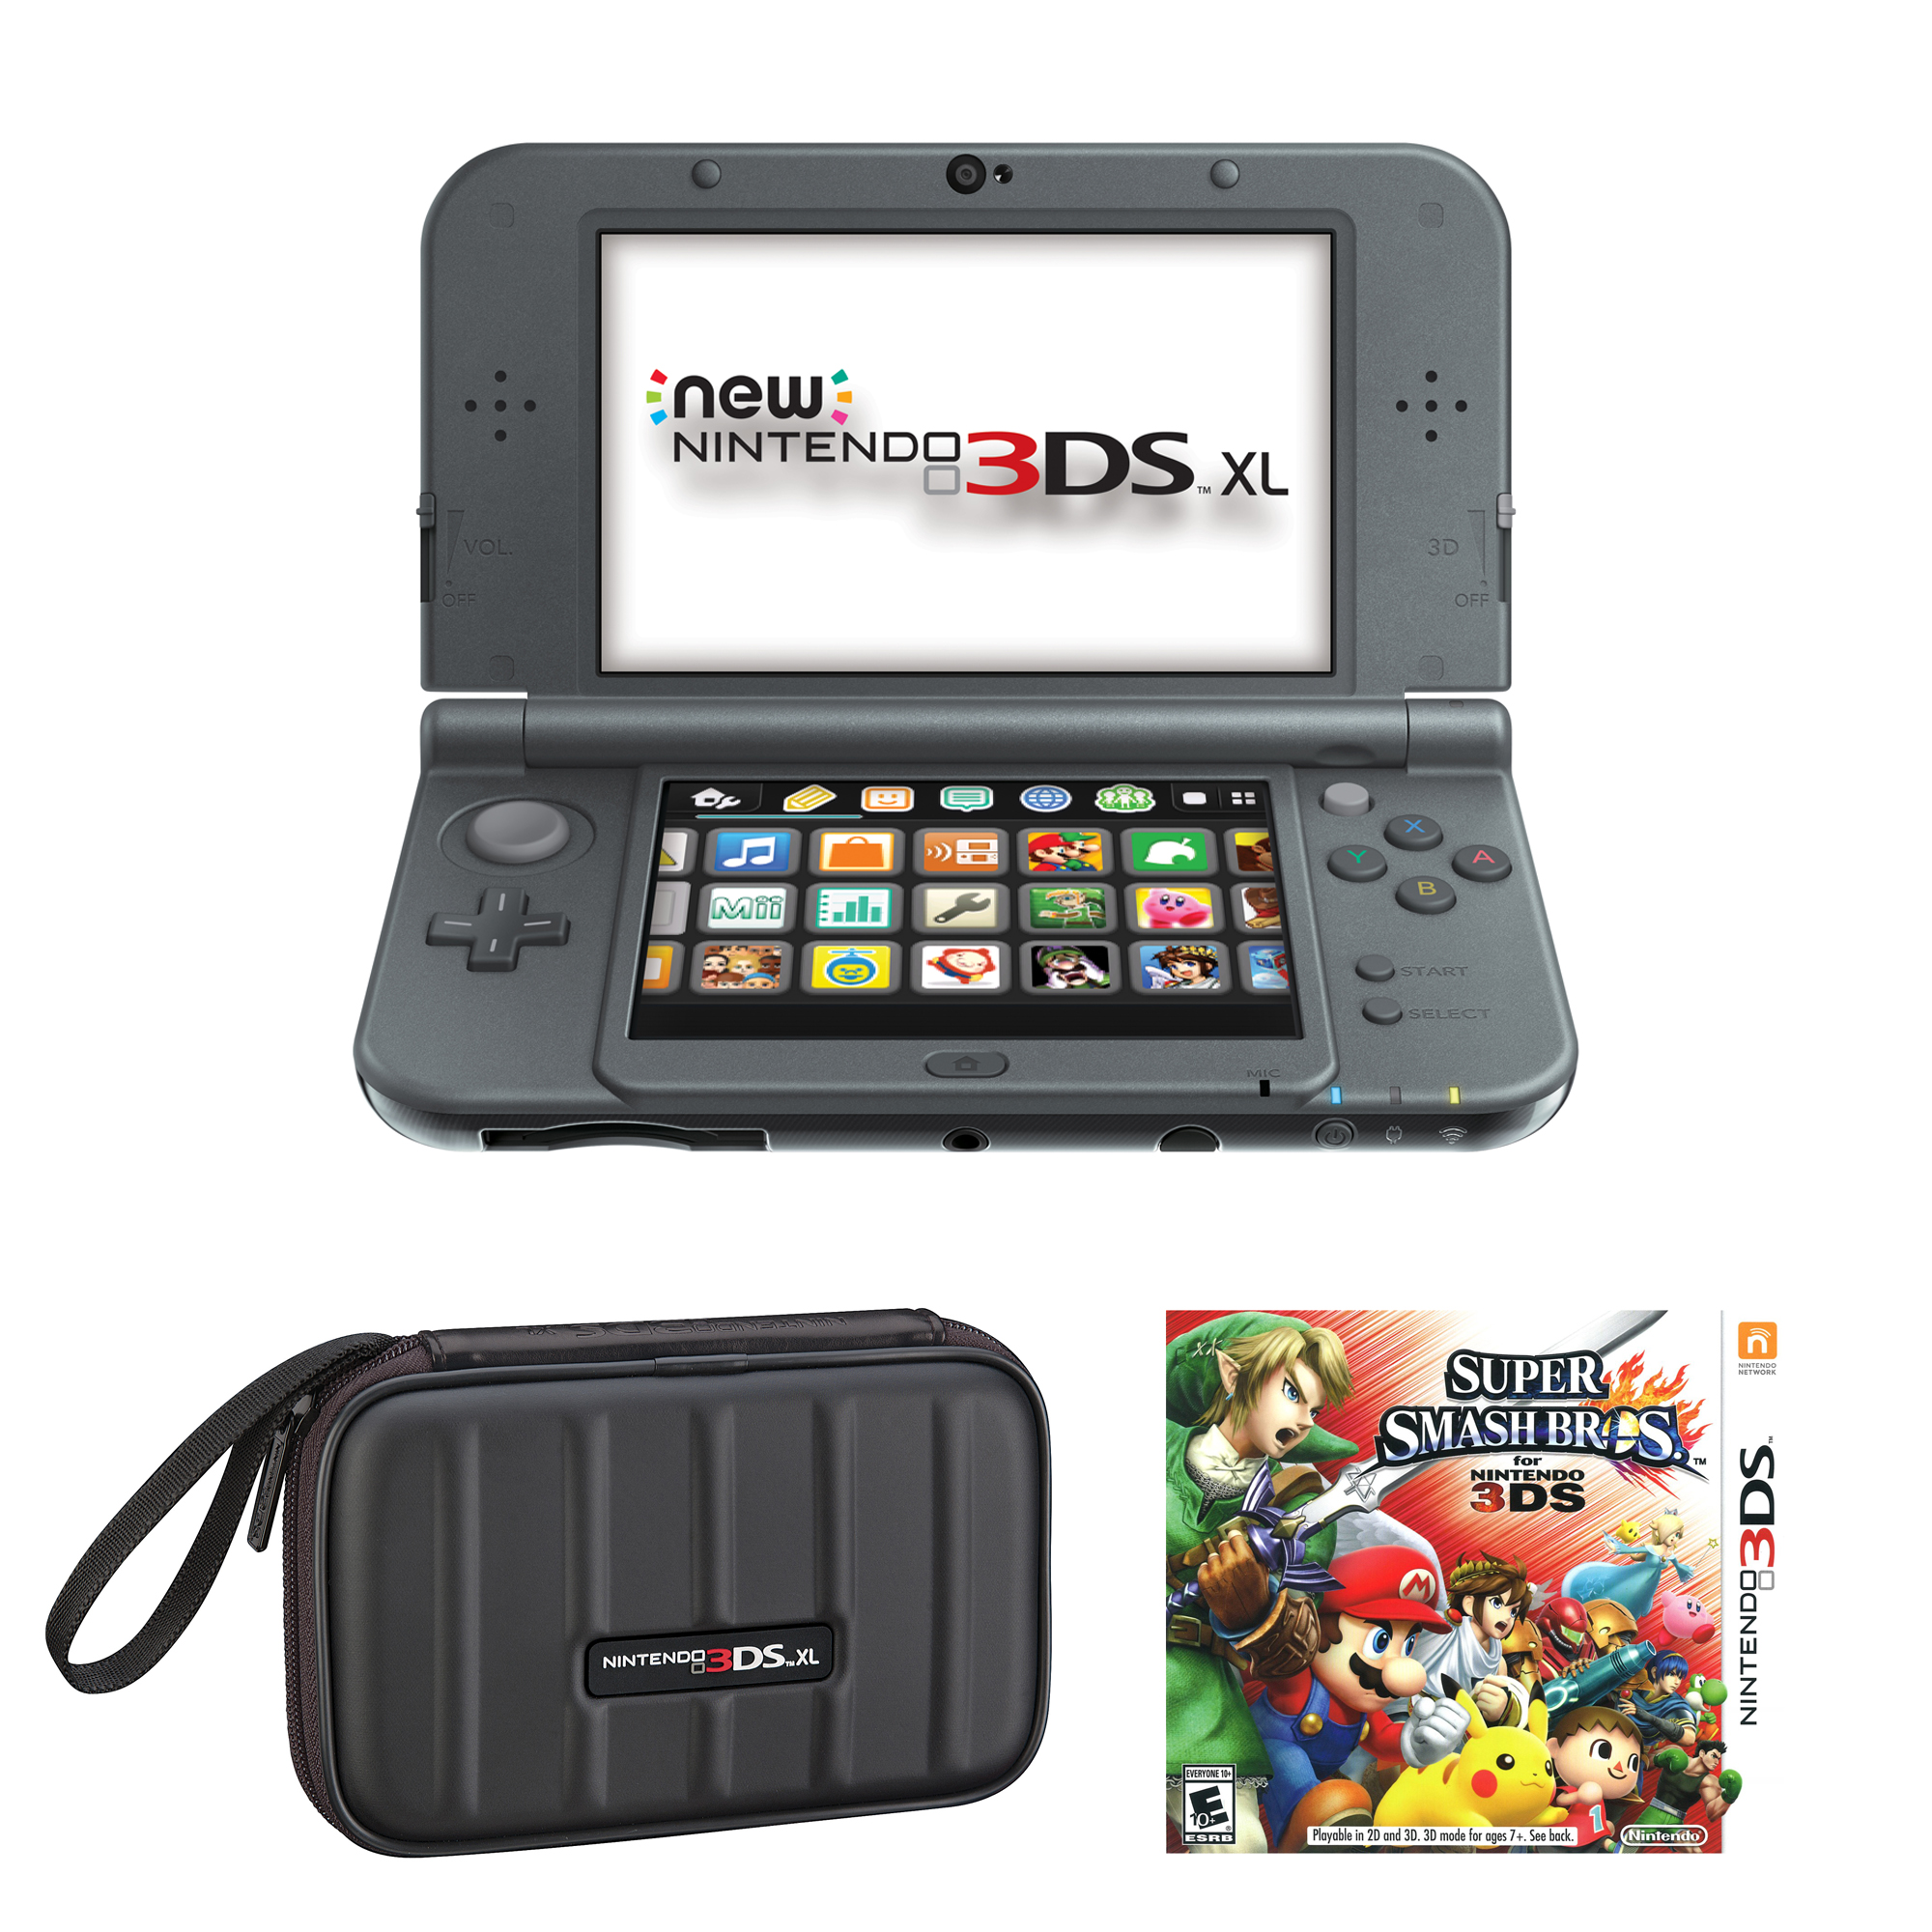 Nintendo 3DS XL with Your Choice of Game and Accessory